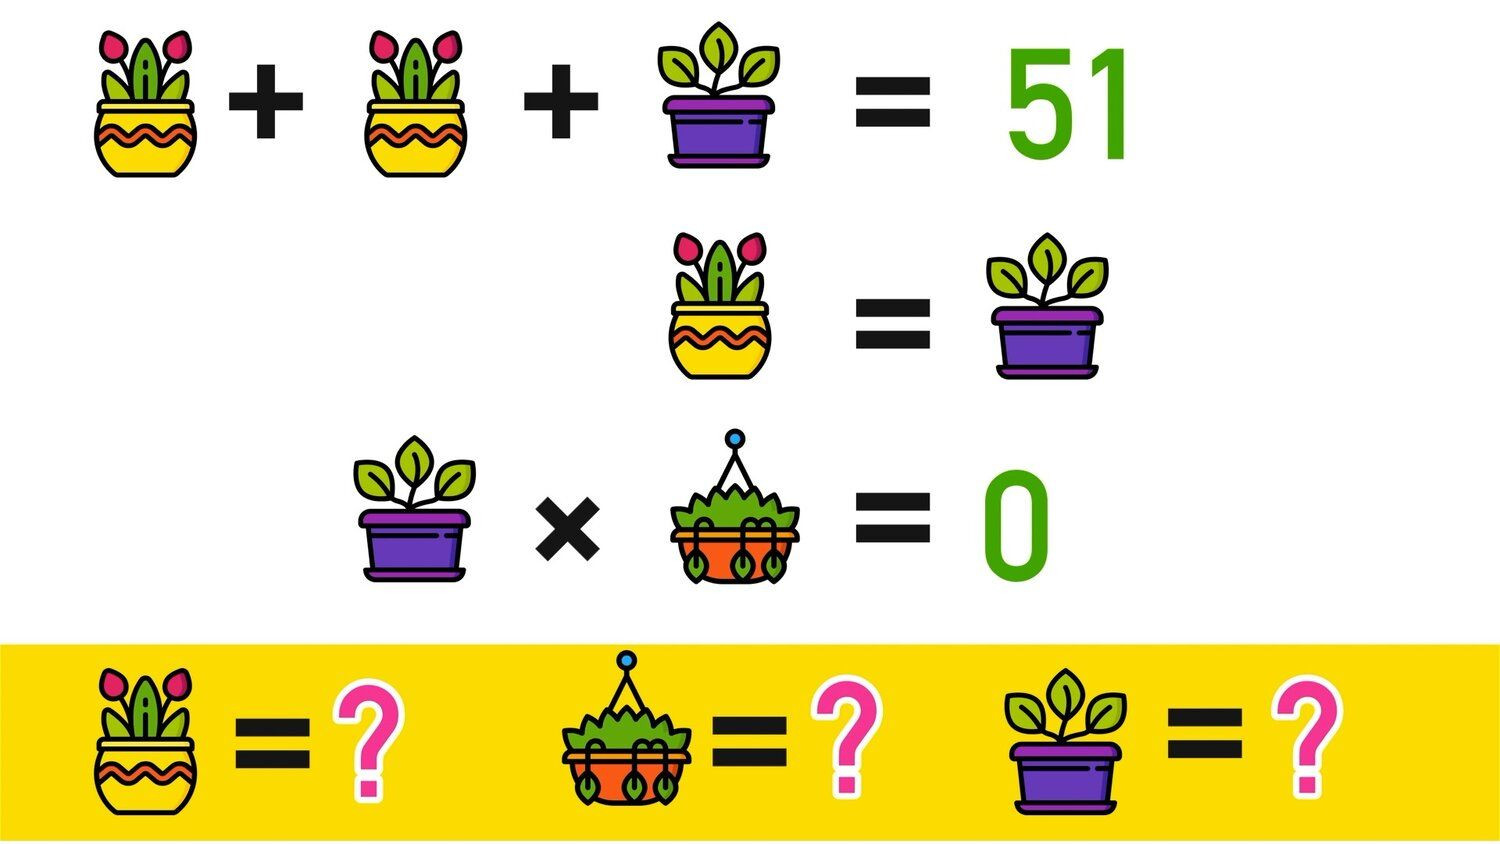 6th Grade Math Puzzles Pdf Pin On Inspiration for Math Teachers